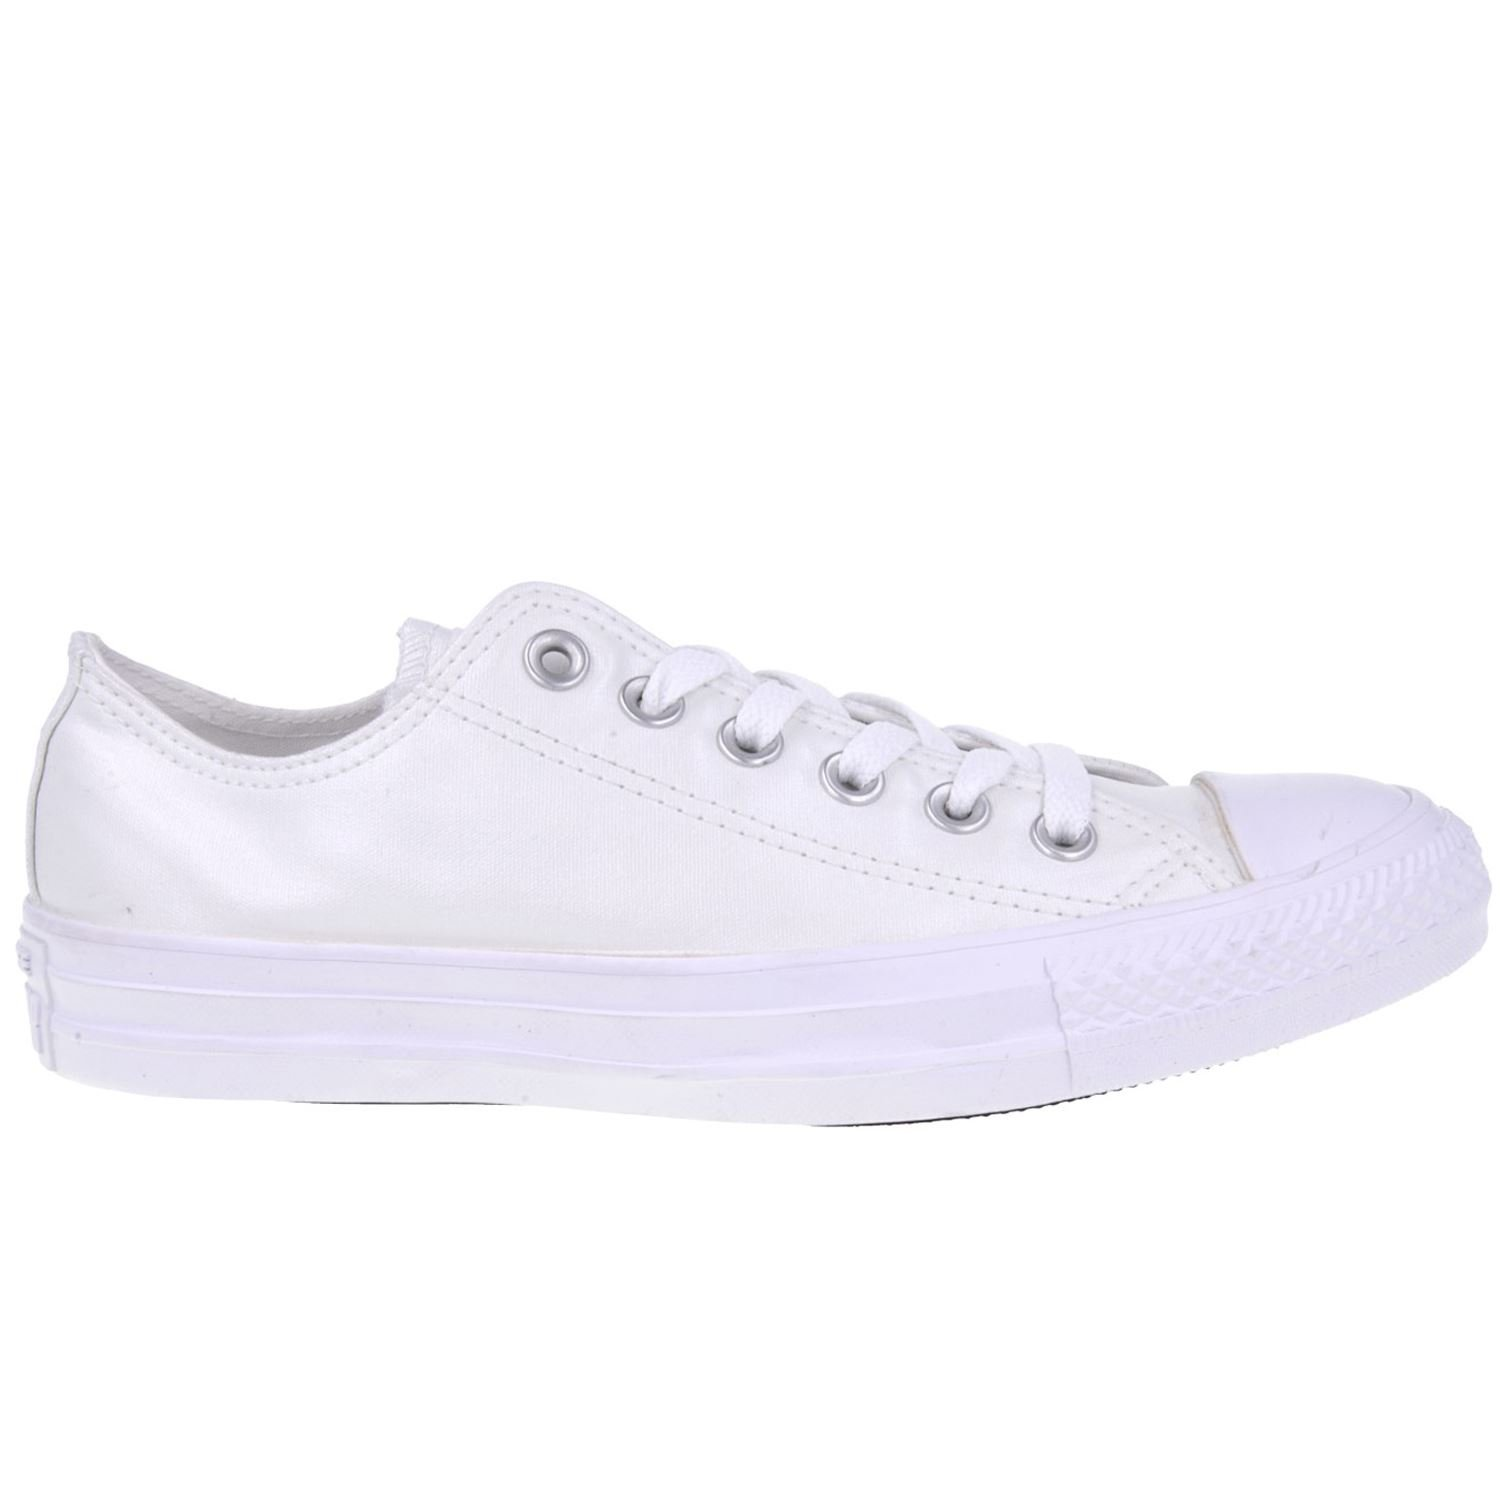 Converse Womens Unisex All star Fashion Sneaker B06XY913K4 8 B(M) US Women / 6 D(M) US Men|Optical White/White/White Optical White/White/White 8 B(M) US Women / 6 D(M) US Men